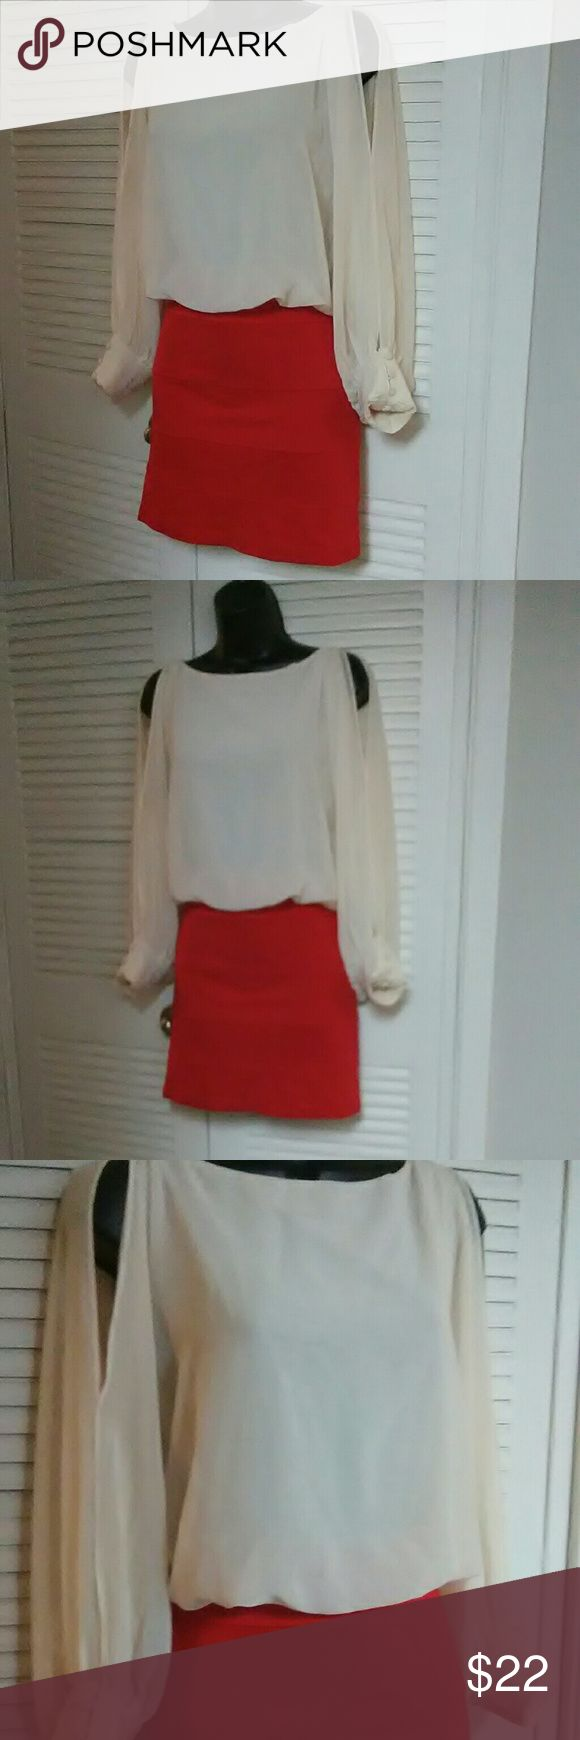 """Gameday by Chloe sz Small red/cream party dress Beautiful dress in excellent used condition. BUNDLE with other items for discount or make an offer!  16.5"""" armpit to armpit 13""""  across waist 36"""" length Gameday by Chloe Dresses"""